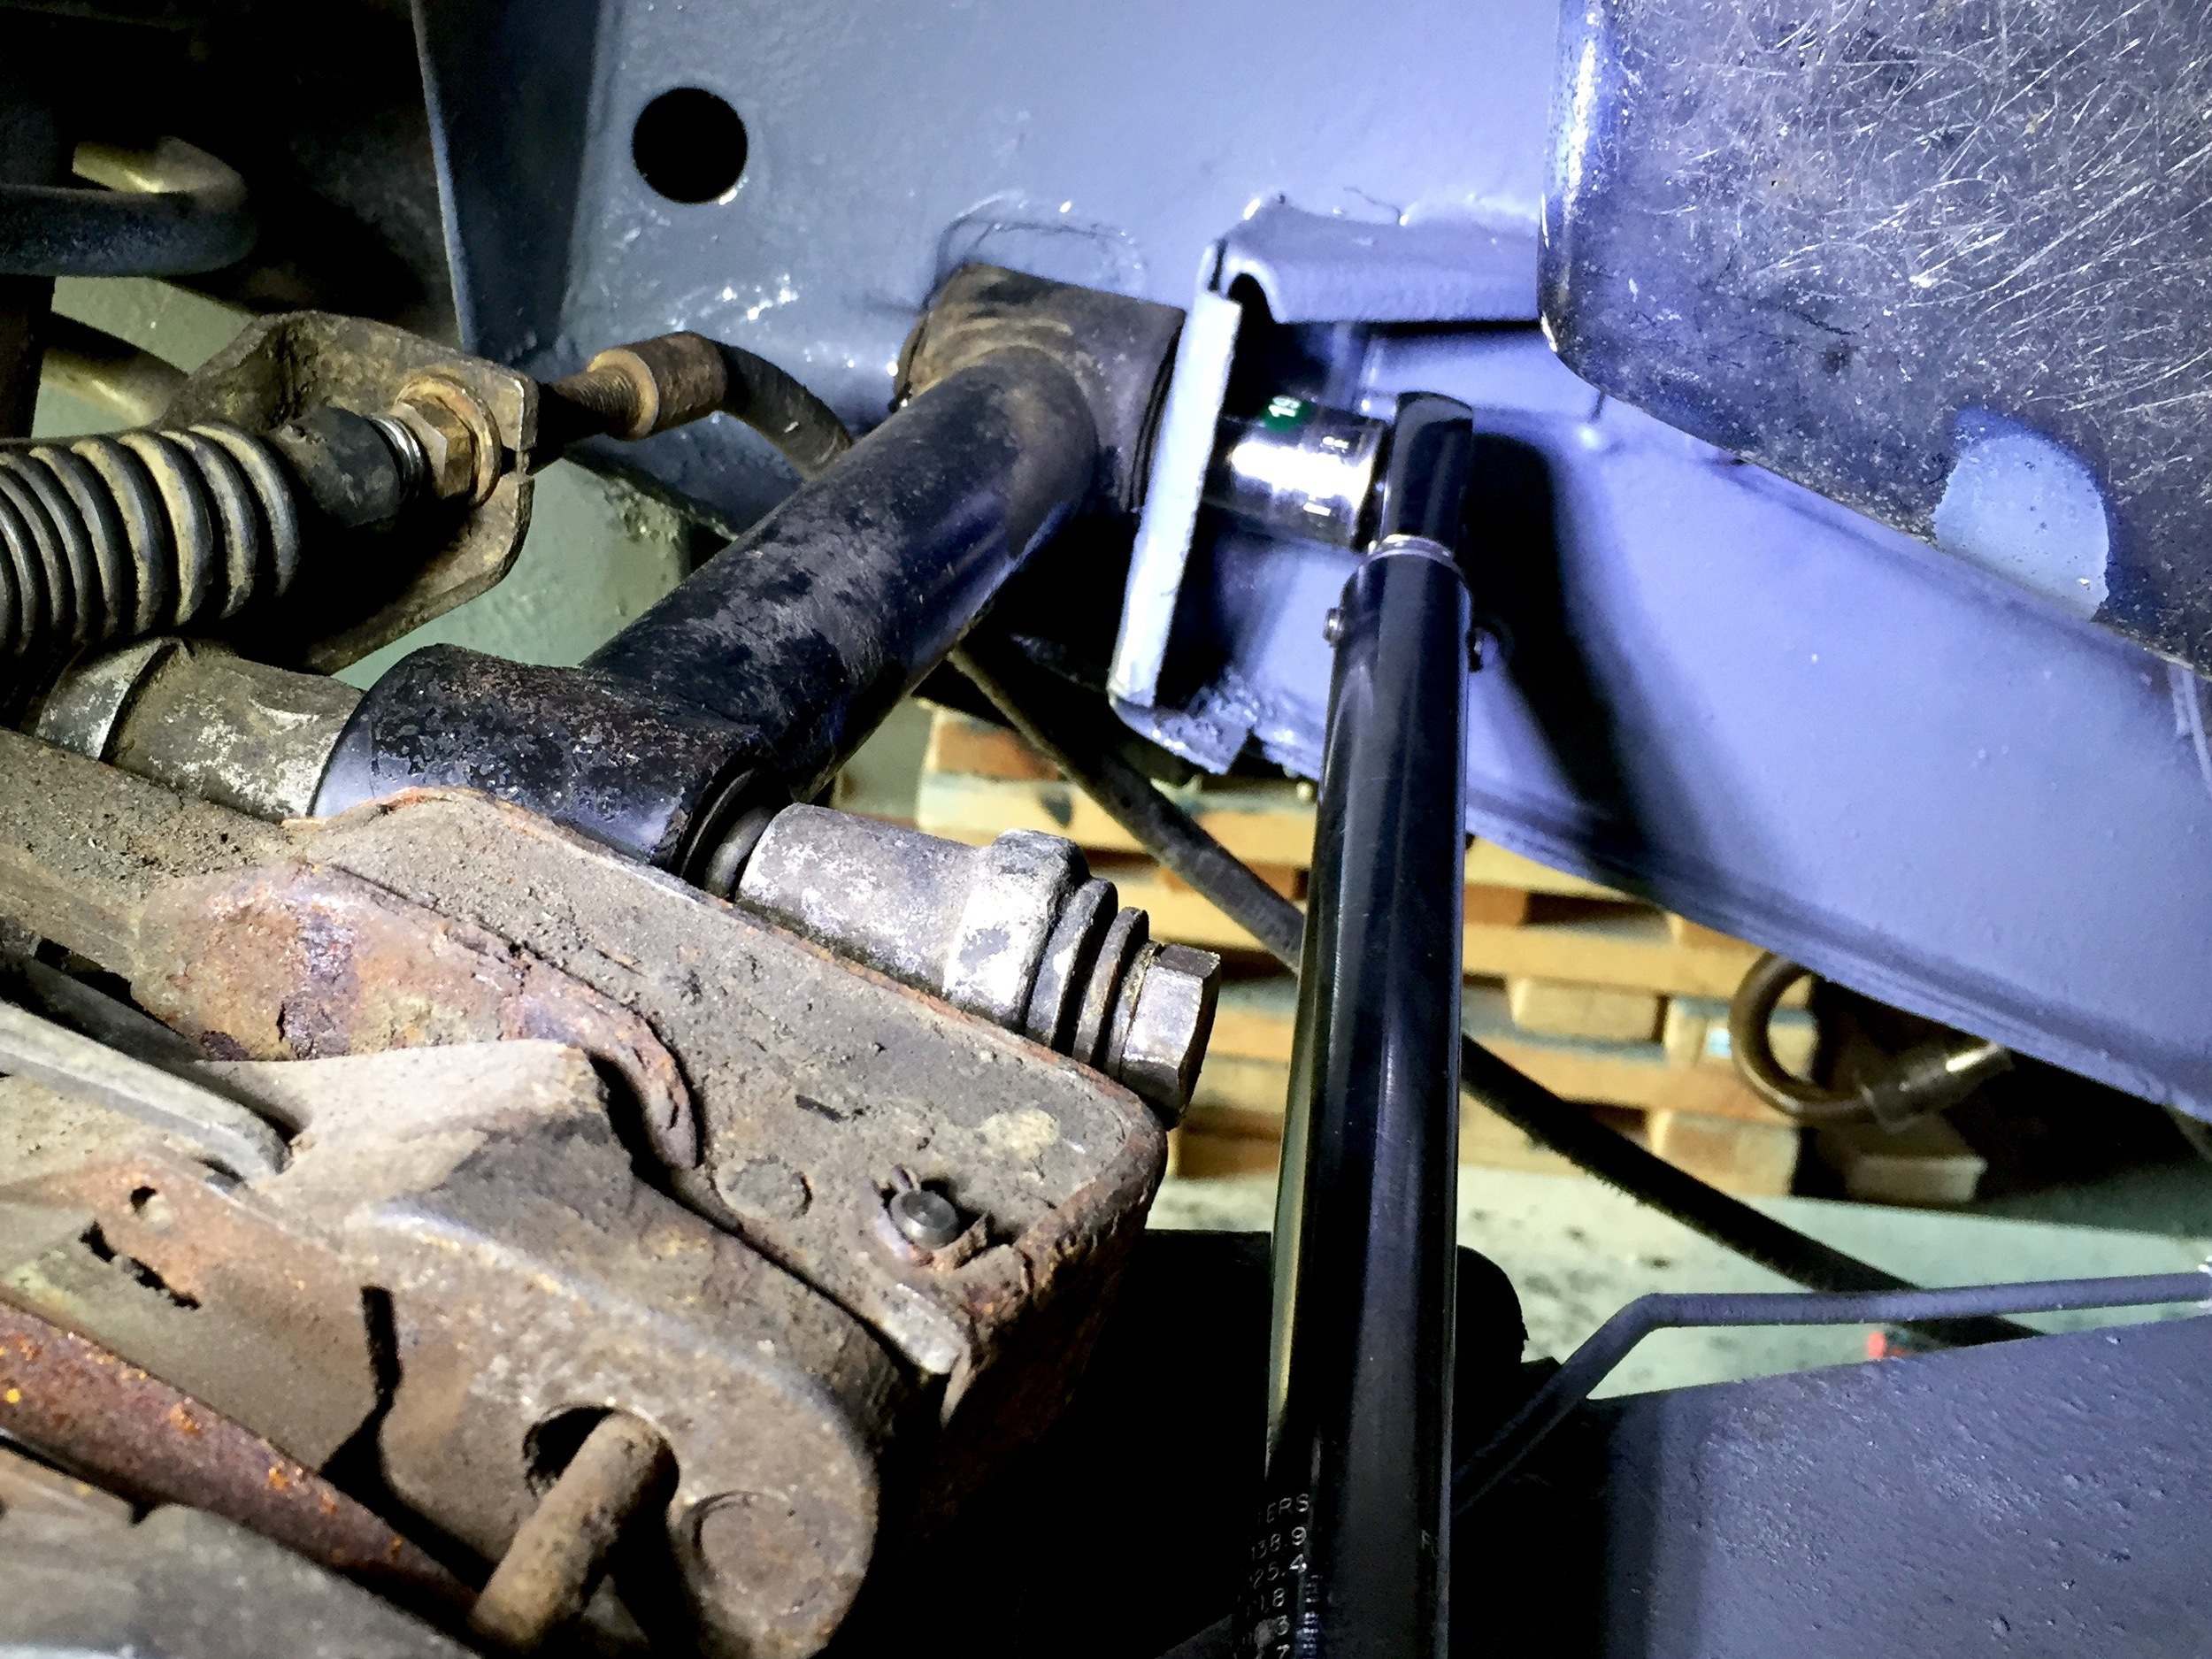 Torquing the inner link arm bolt. The outer bolt is already run through the arm and hub carrier and ready t one torqued.